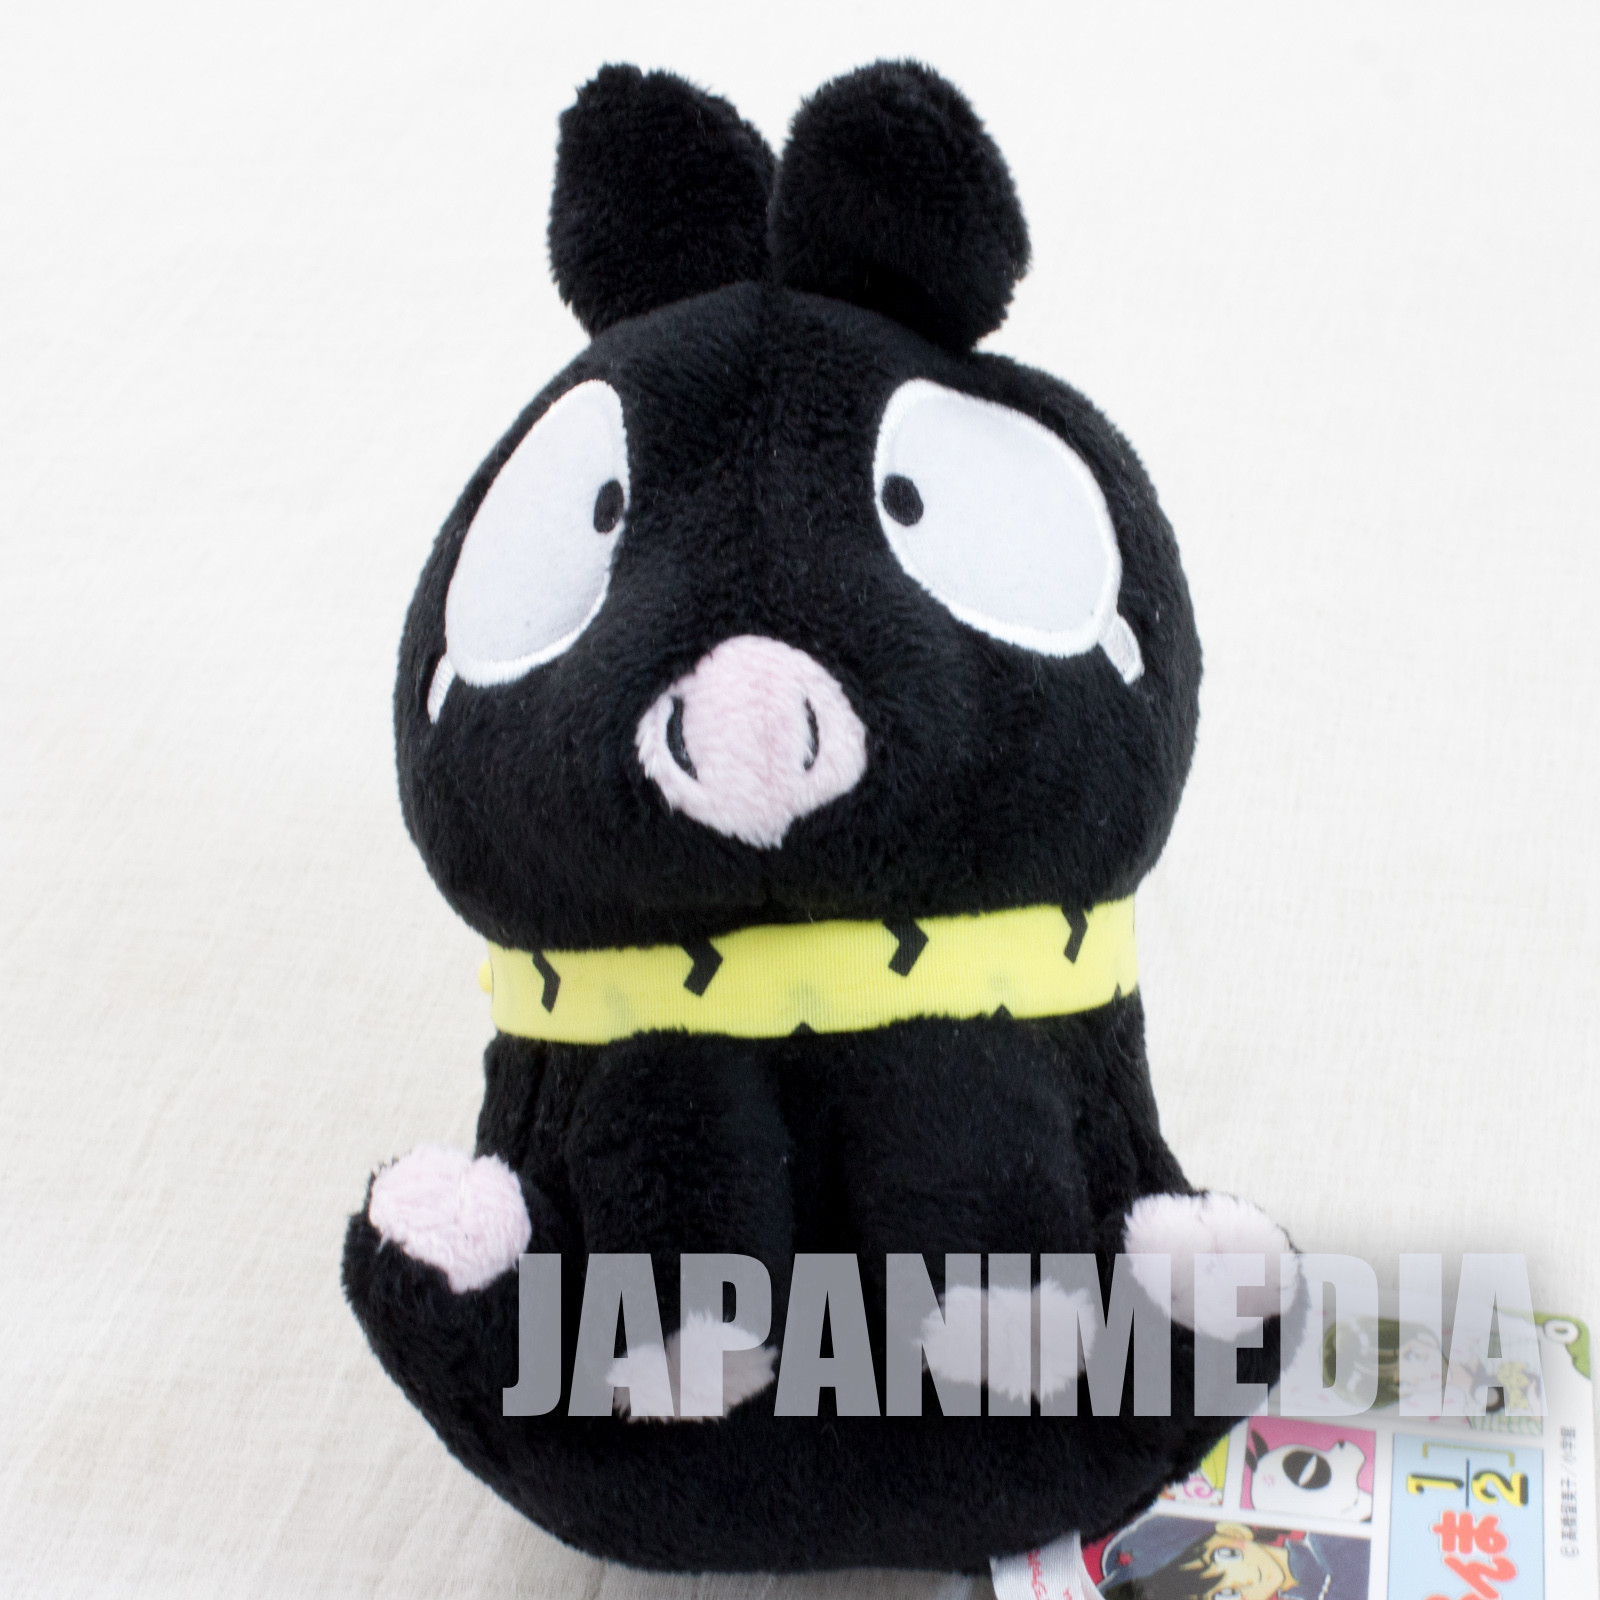 "Ranma 1/2 P-Chan Crying ver. Ryoga Pig 5"" Plush Doll SK JAPAN ANIME MANGA 1"